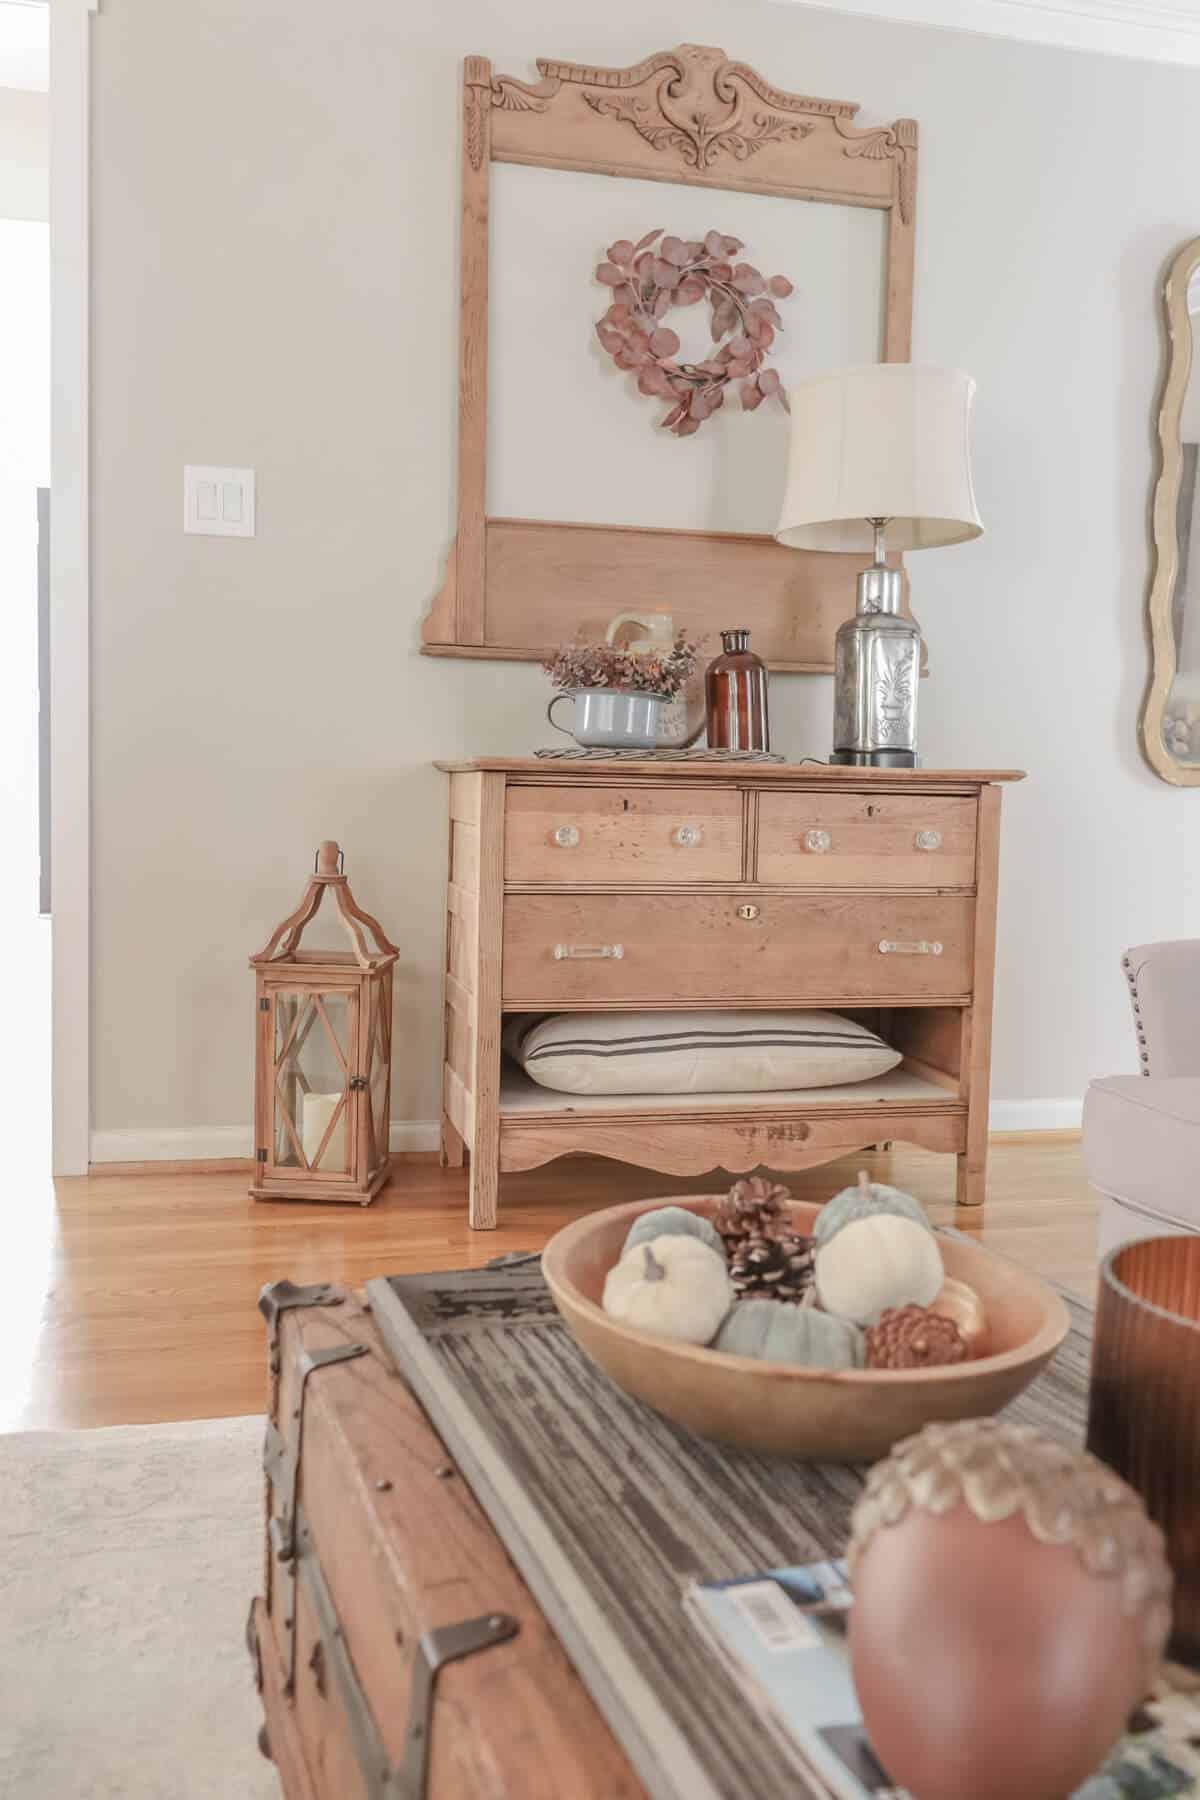 Vintage dresser decorated for fall